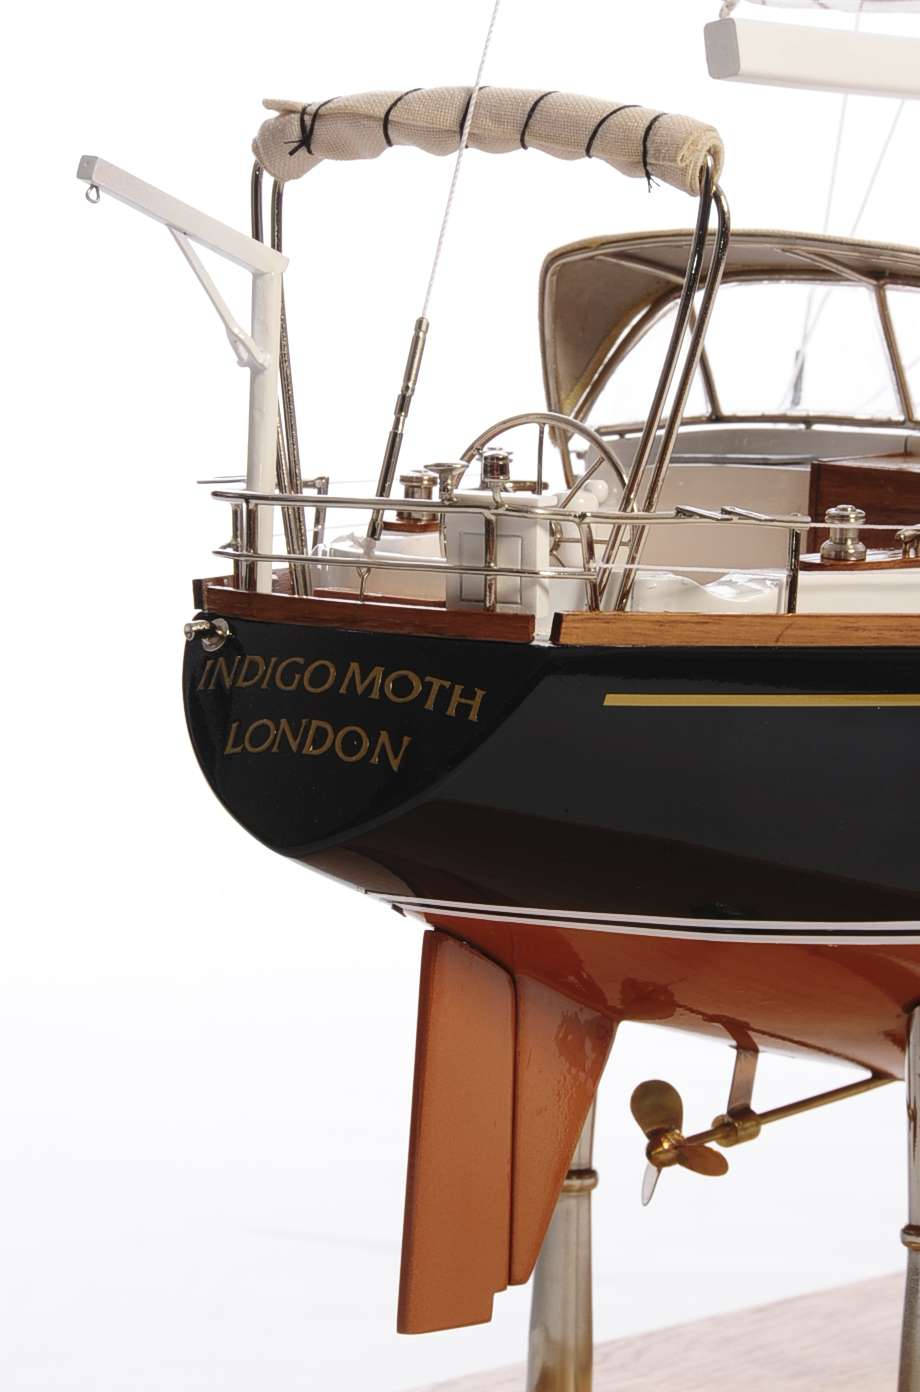 1438-4721-Indigo-Moth-Model-Yacht